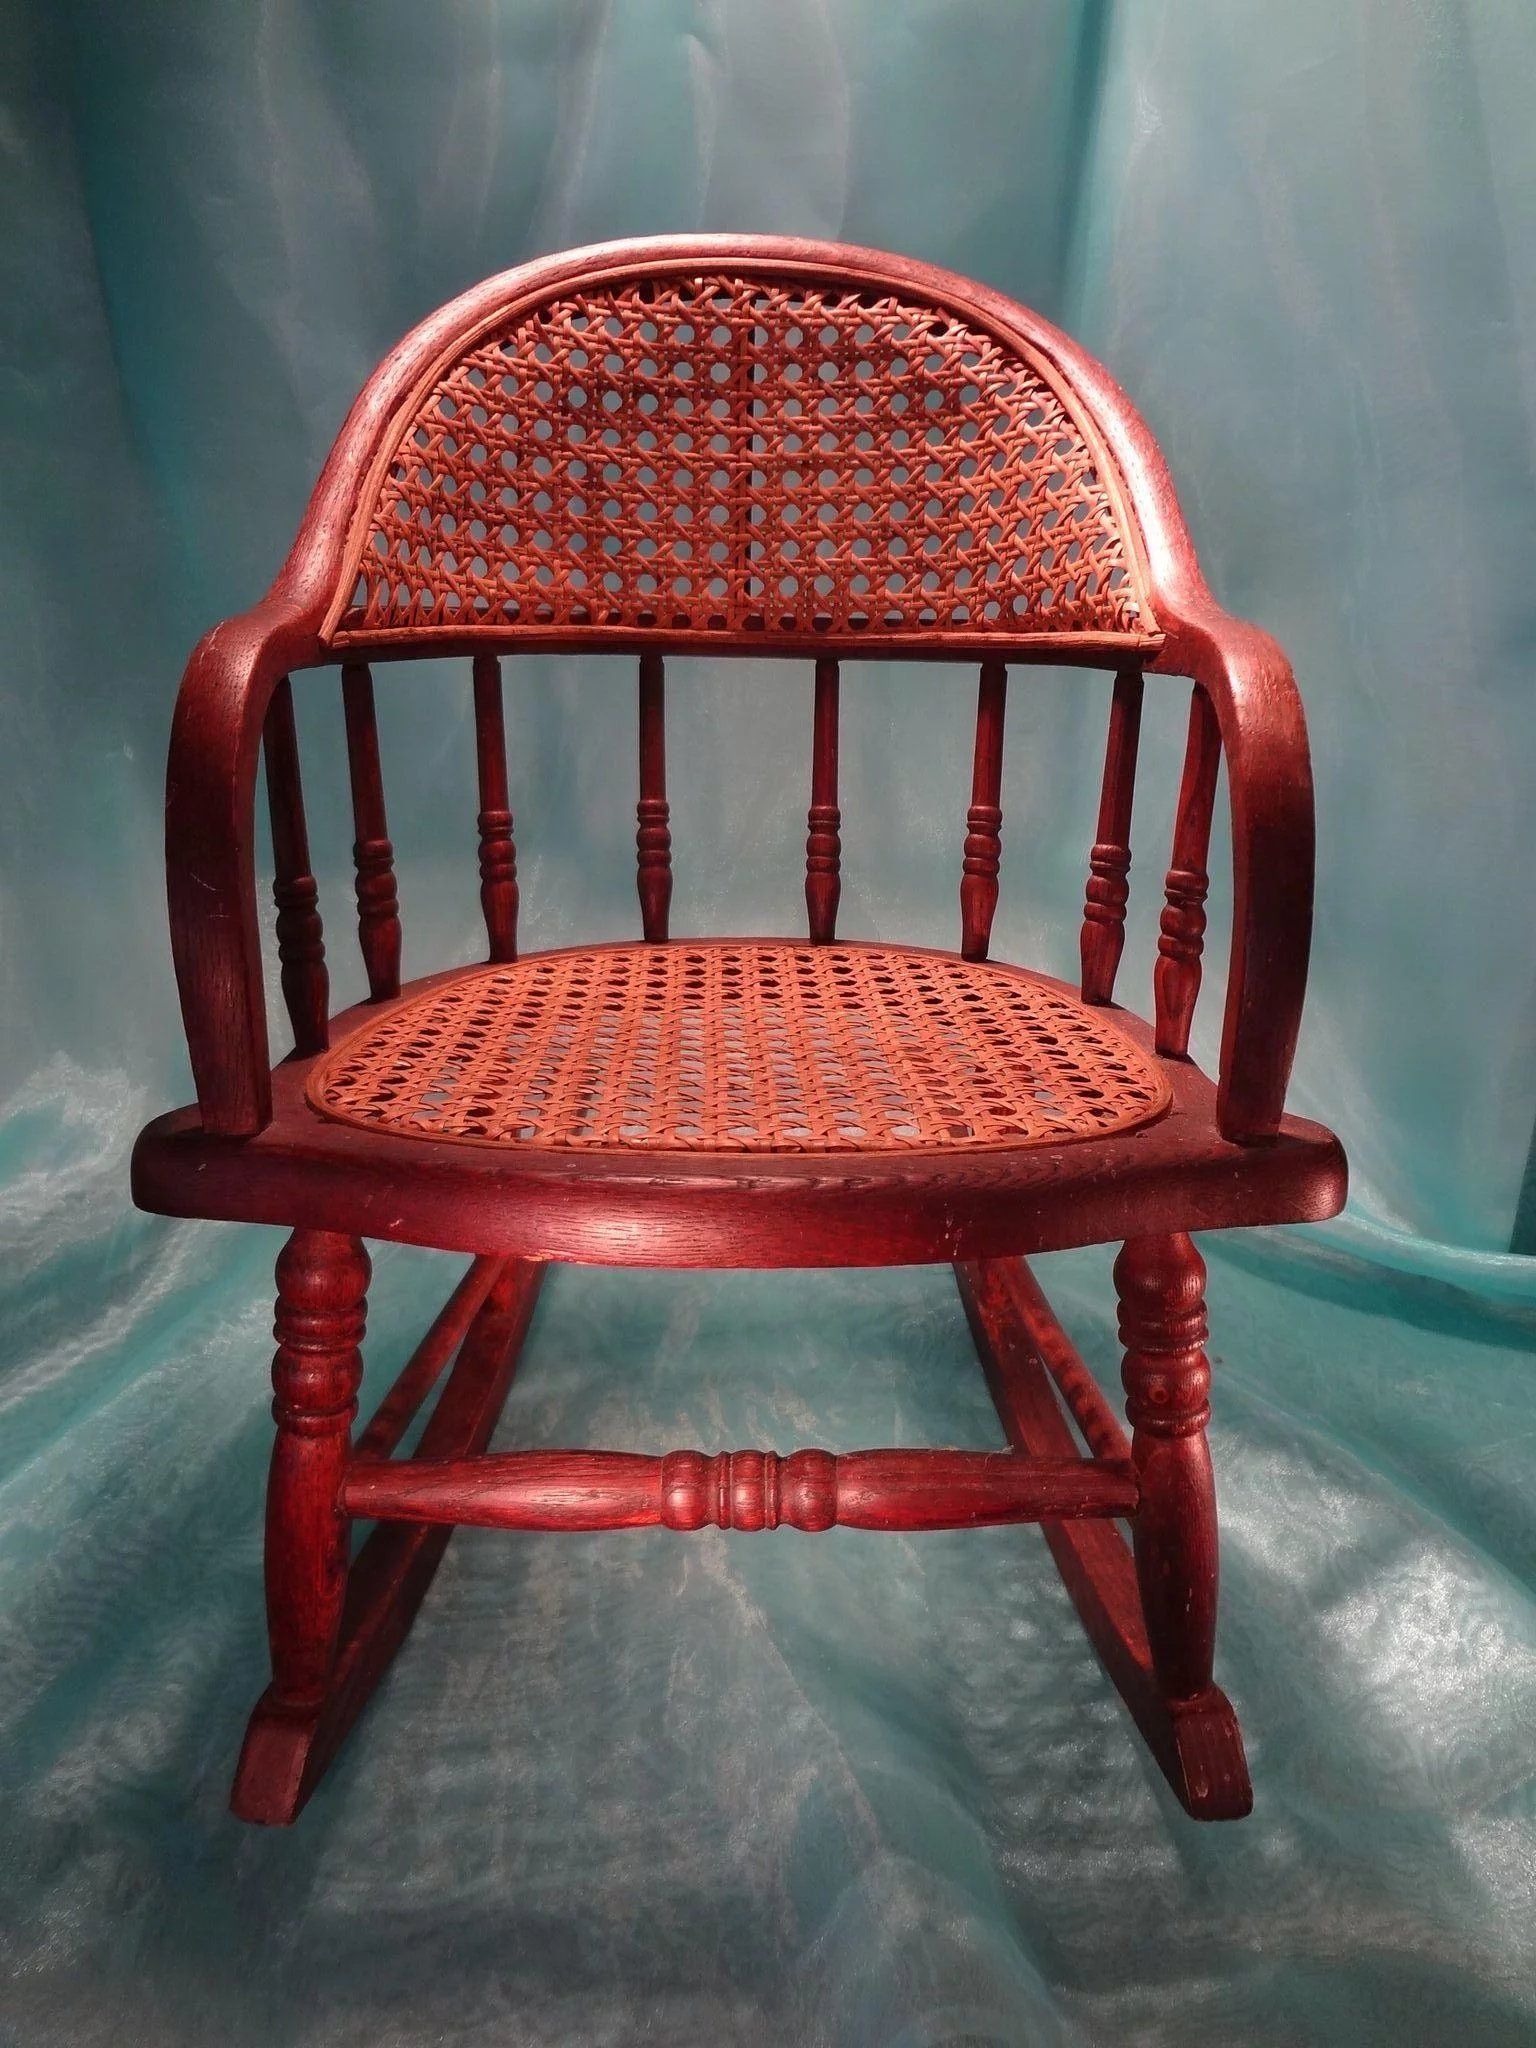 Antique Cane Seat And Back Rocking Chair Jackie Everett